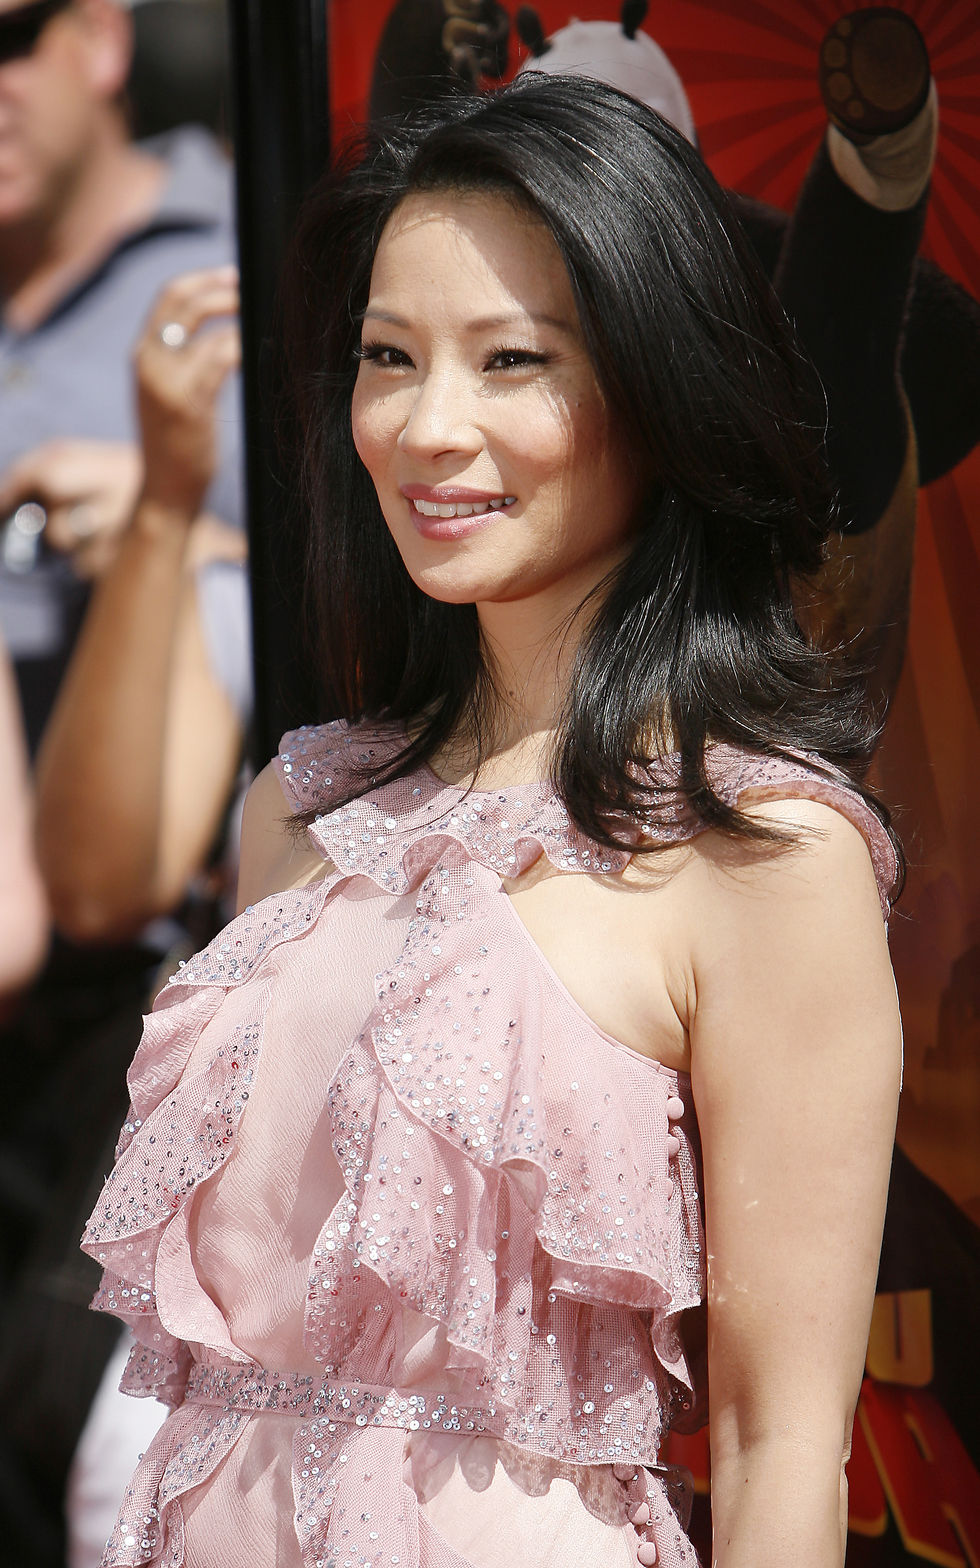 lucy-liu-kung-fu-panda-premiere-in-hollywood-07